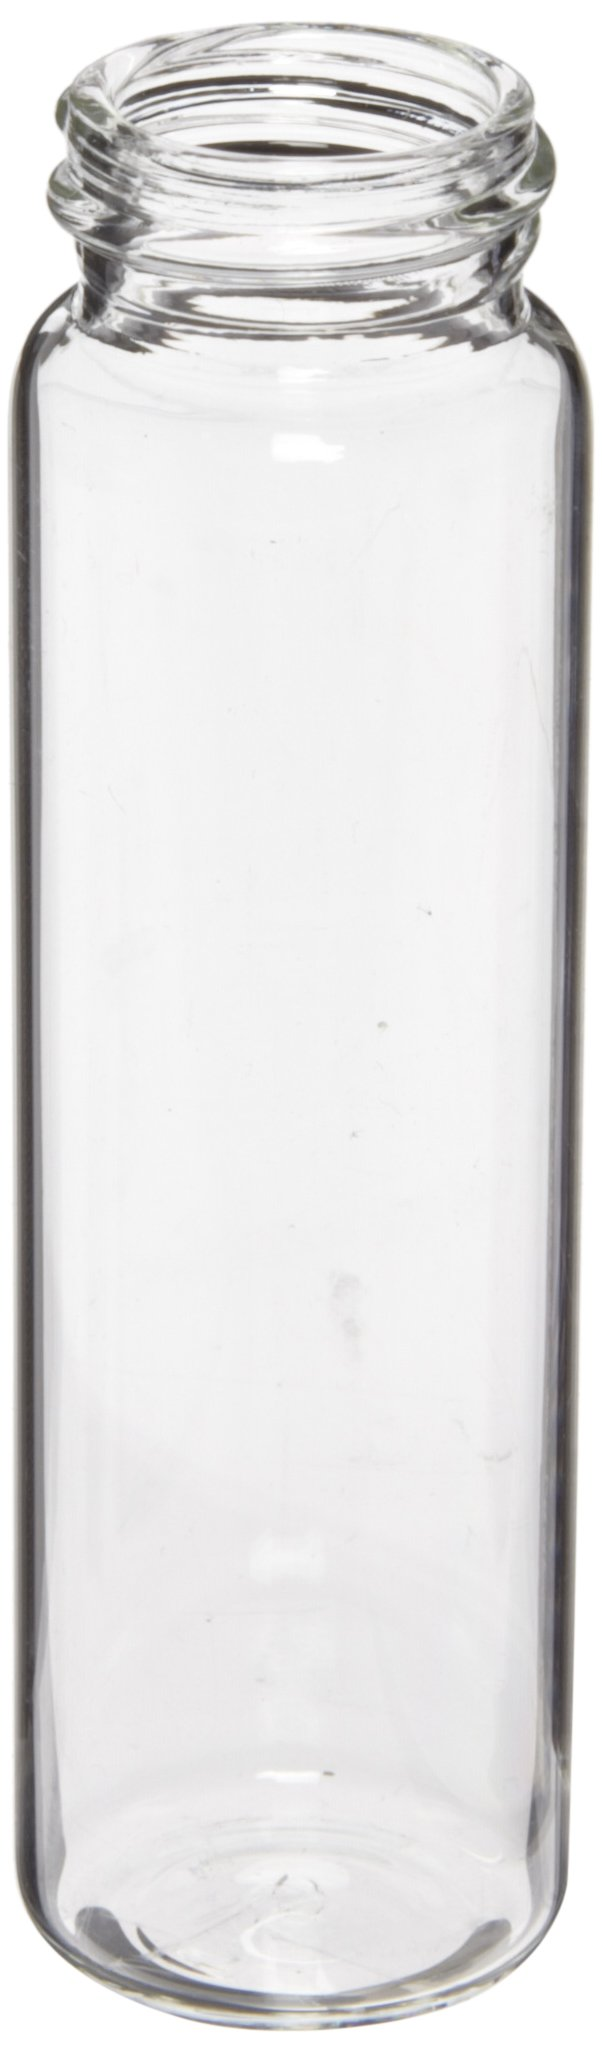 National Scientific Clear glass EPA Vial 40ml (5 Cases of 100 eaches - 500 eaches)